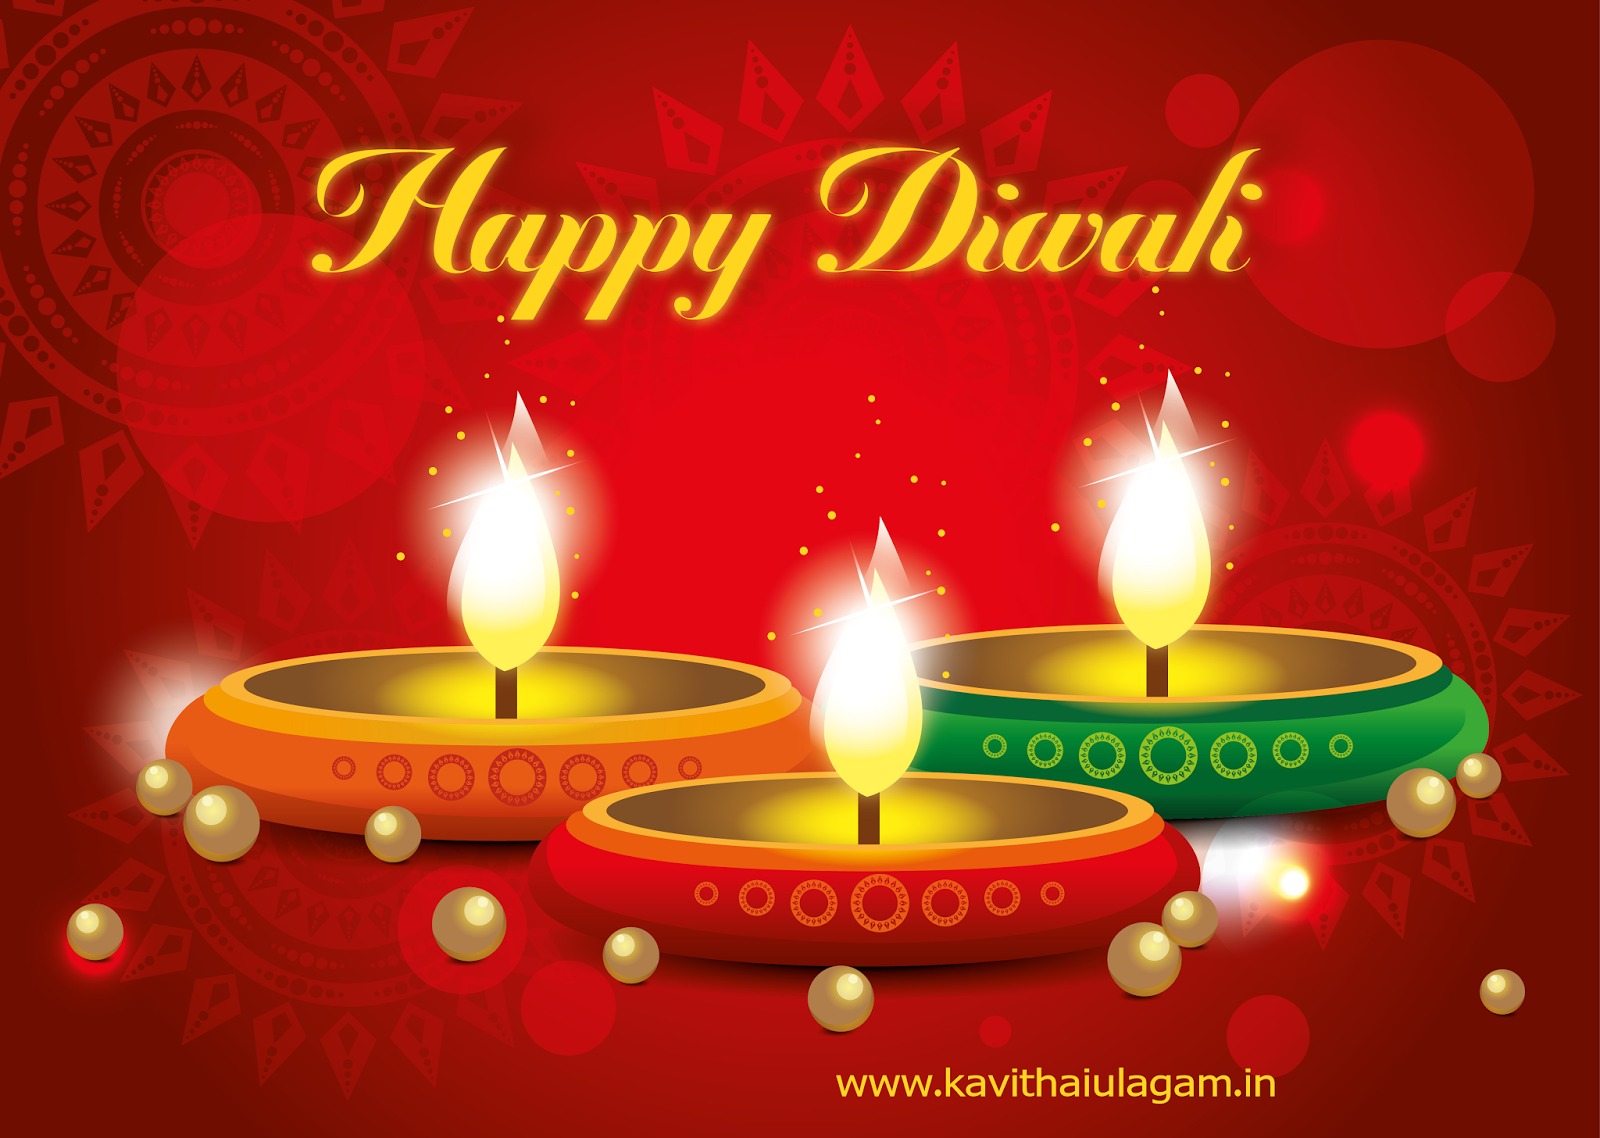 Diwali greetings wishes images hd pictures kavithaigal ulagam happy diwali images greetings in tamil m4hsunfo